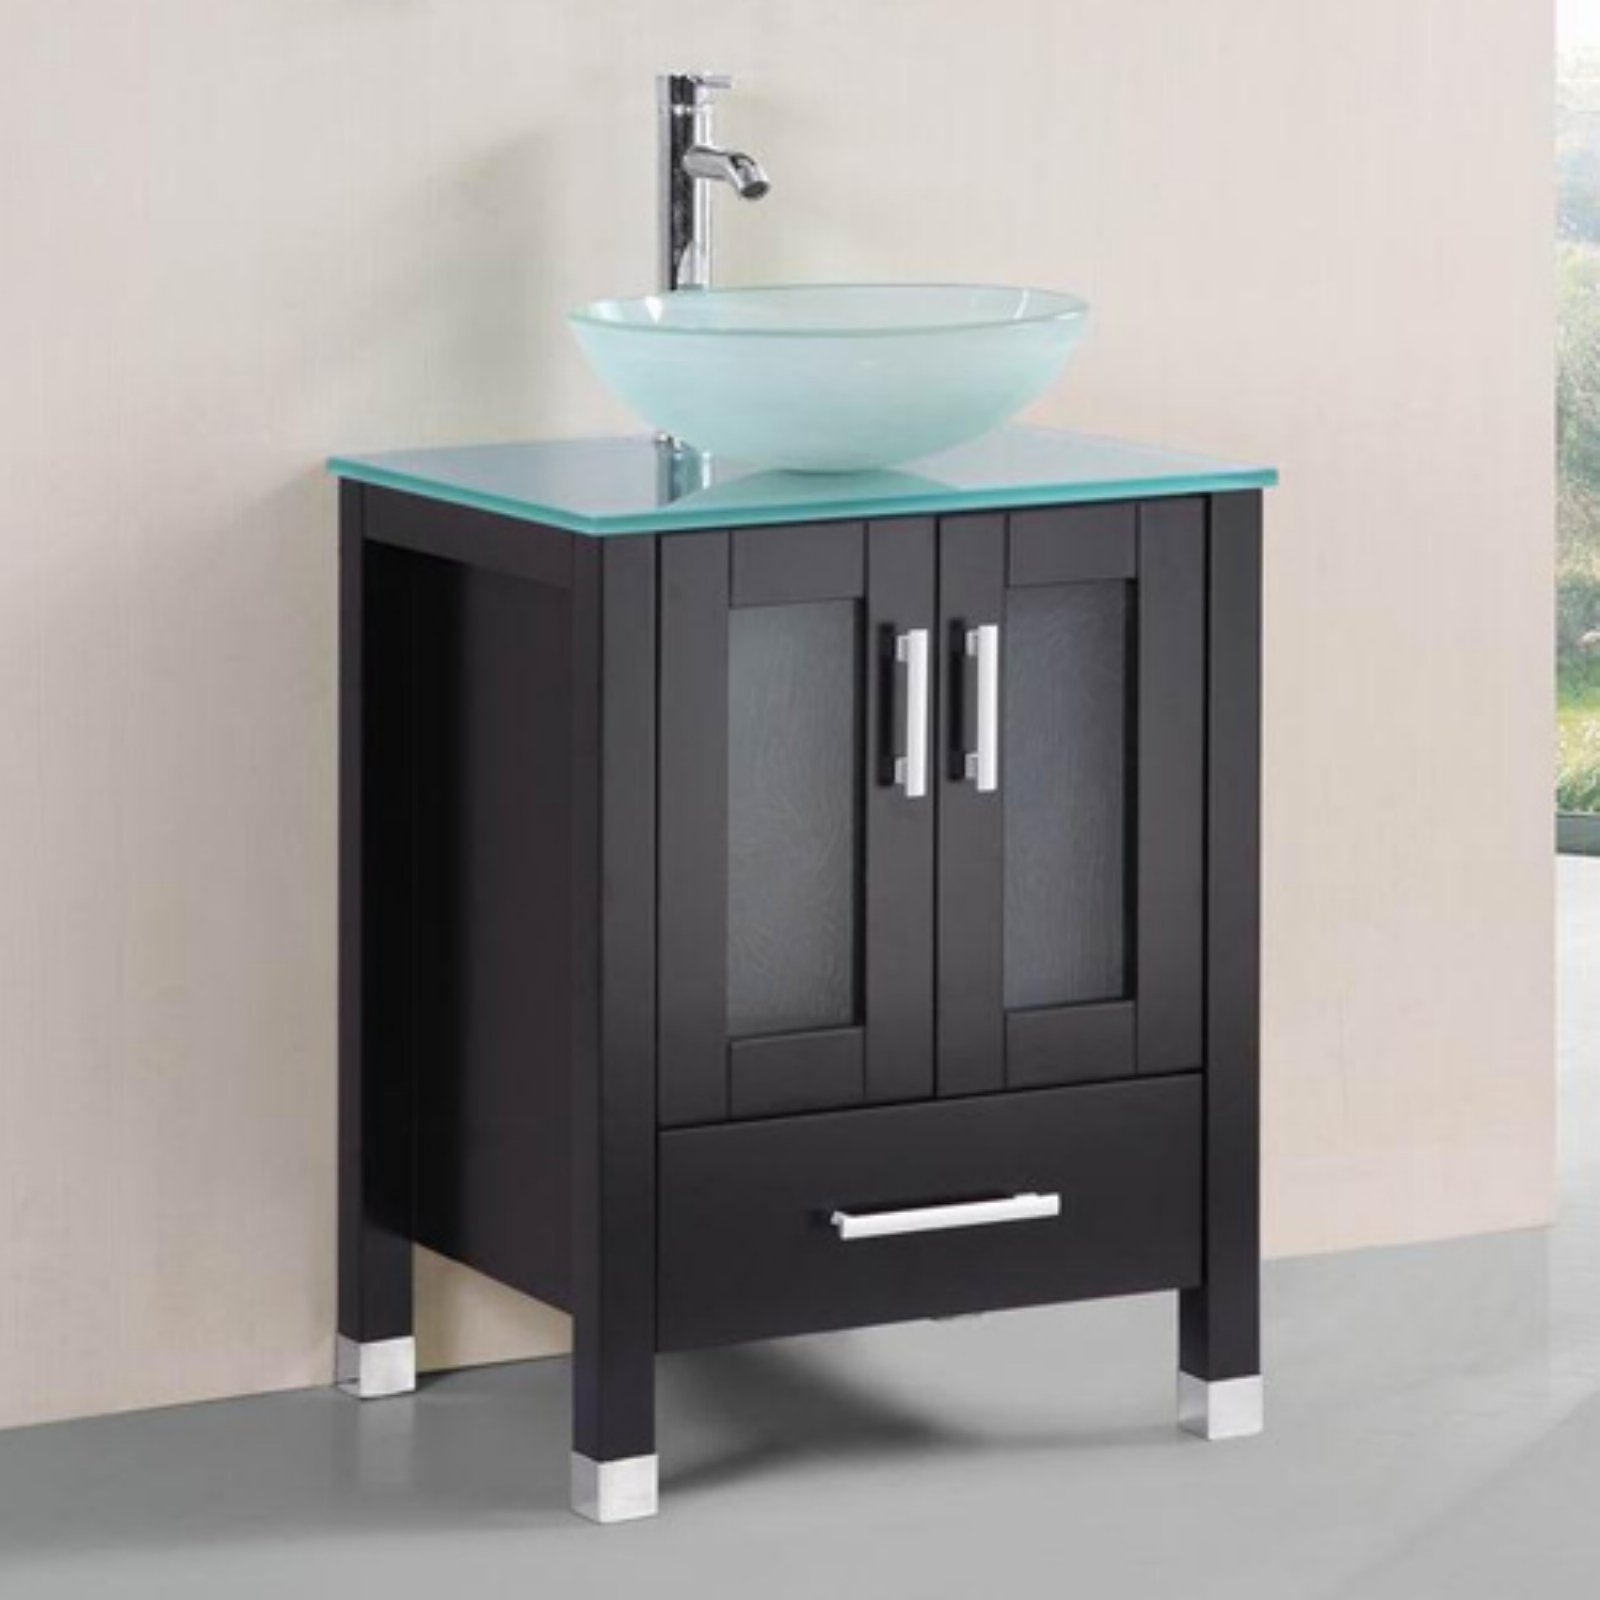 Belvedere 24 in. Tempered Glass Single Bathroom Vanity by Belvedere Bath LLC